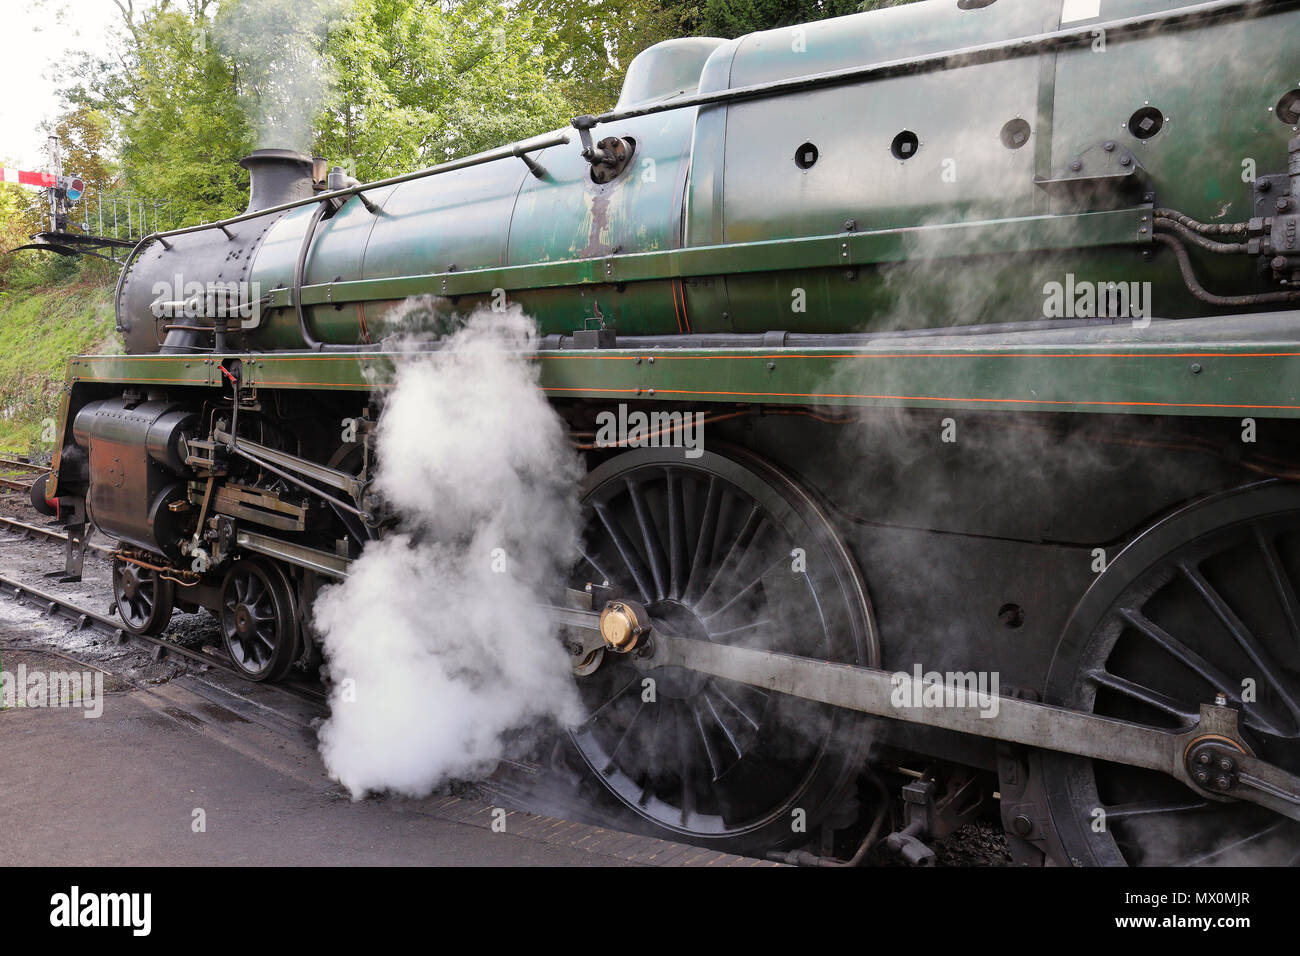 The Age of Steam, Vintage Steam Locomotives on an English Railway - Stock Image